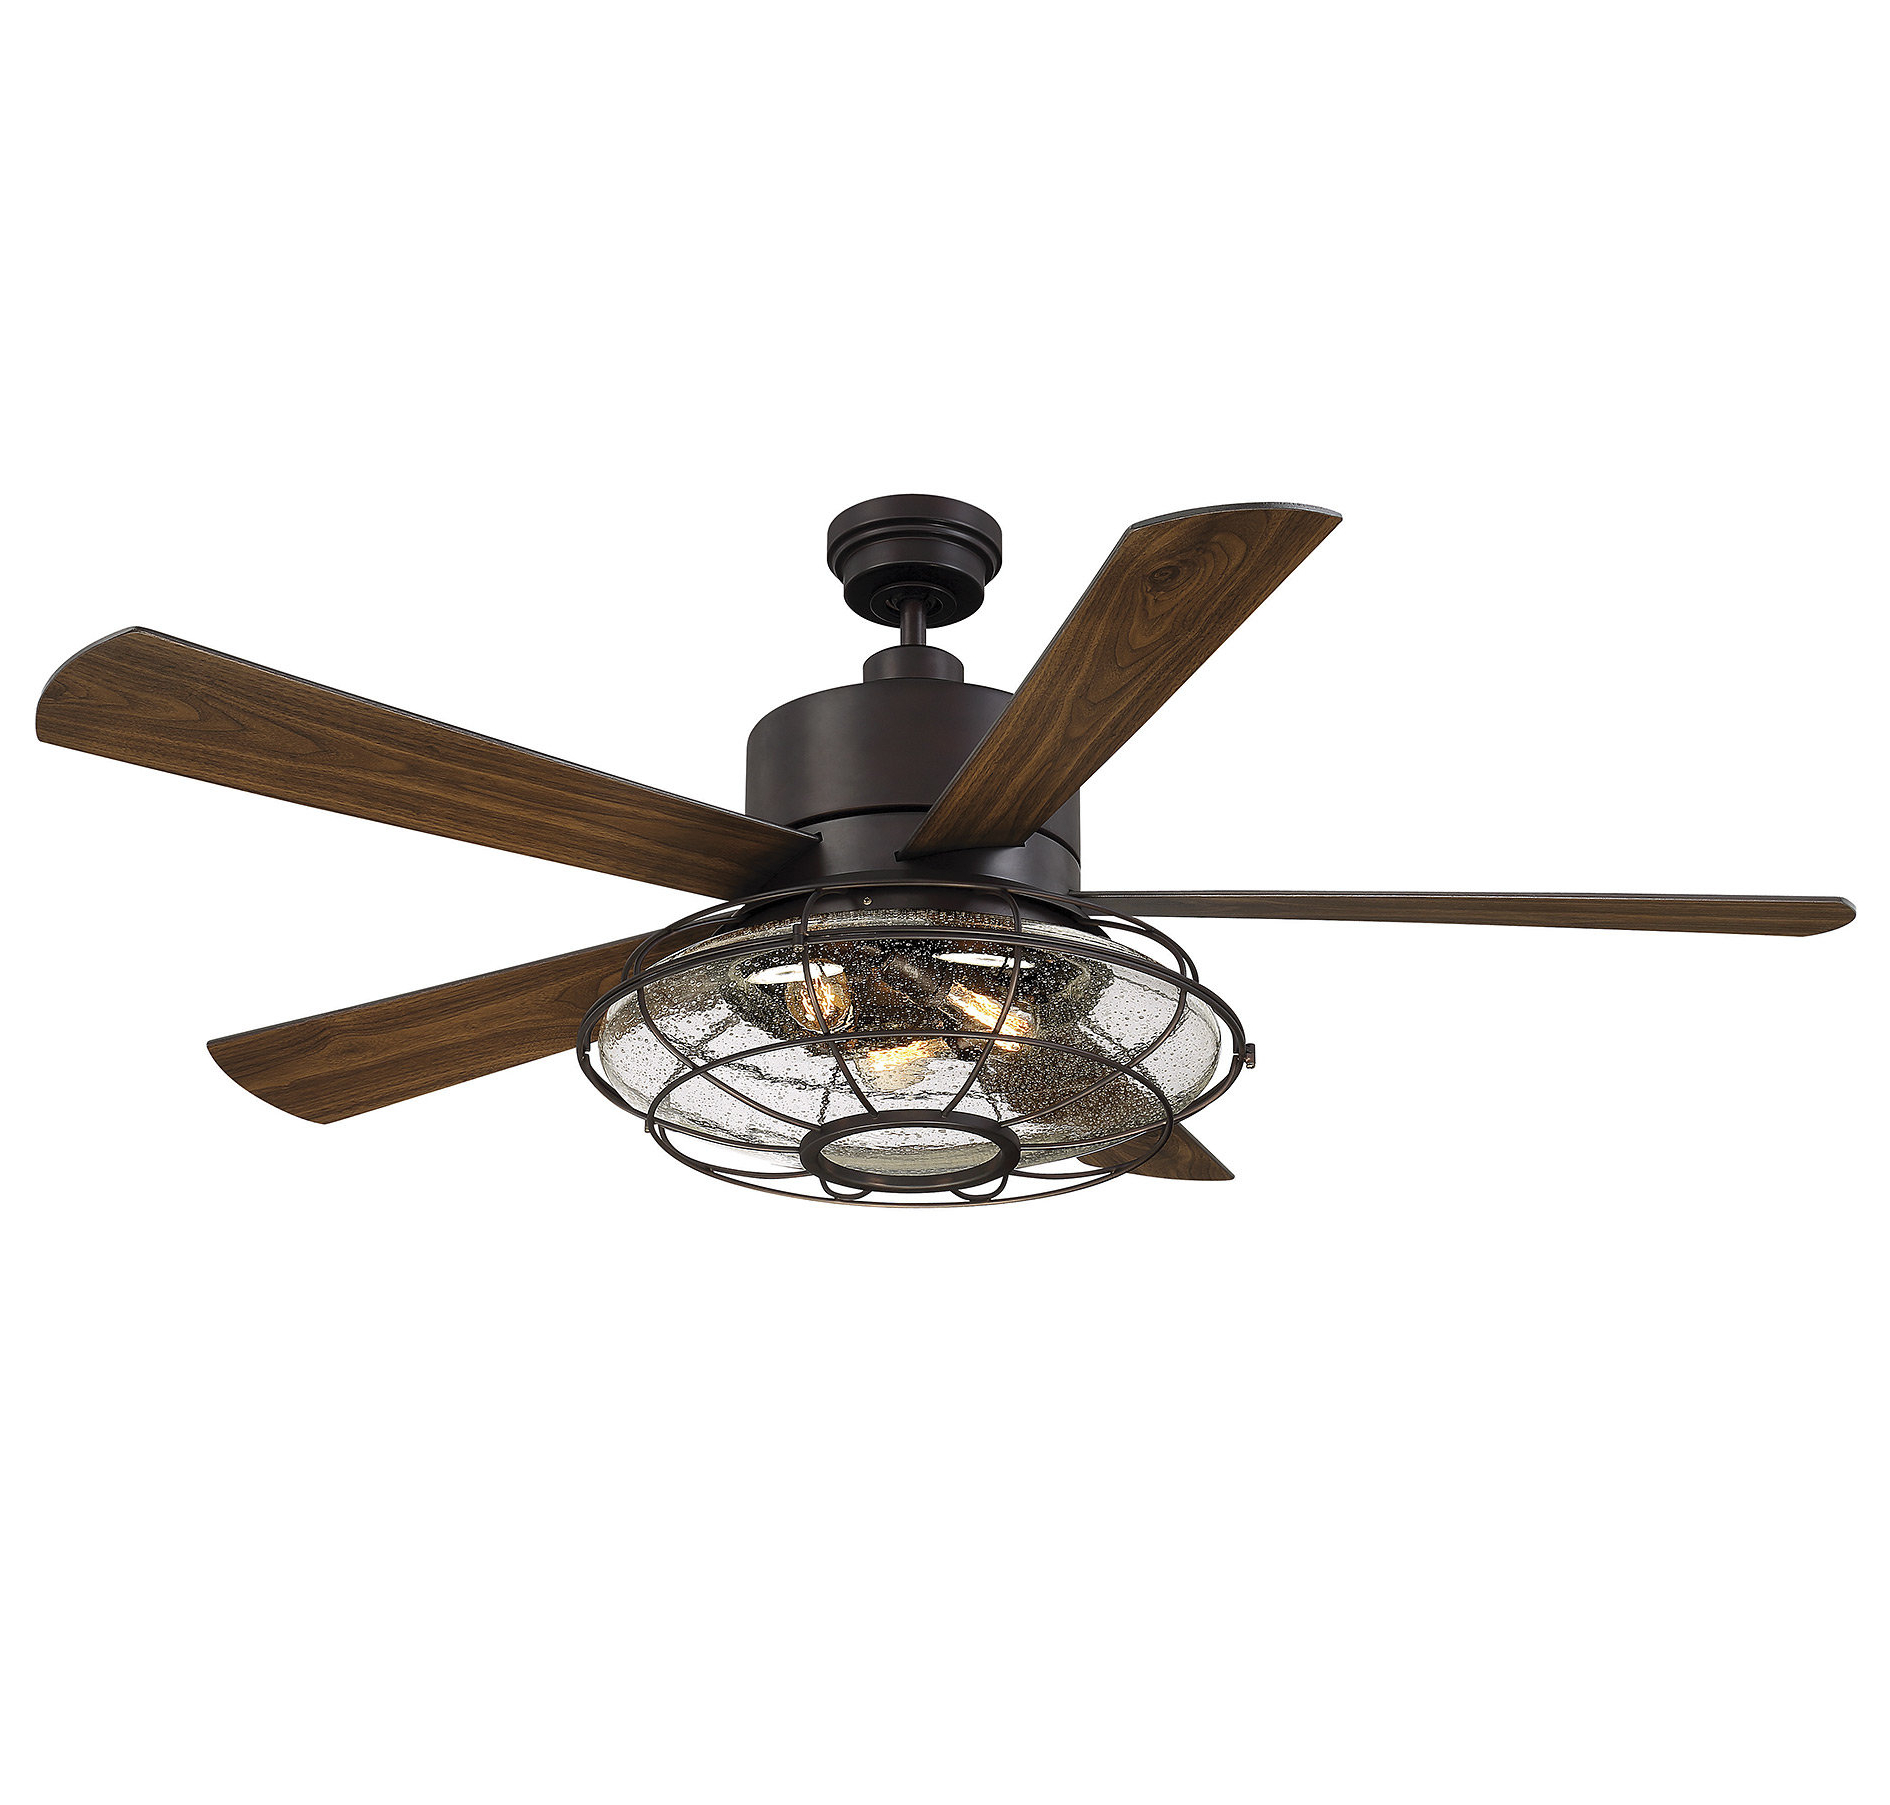 "Wilburton 5 Blade Ceiling Fans With Remote Regarding Most Recently Released 56"" Roberts 5 Blade Ceiling Fan With Remote Control, Light Kit Included (View 17 of 20)"